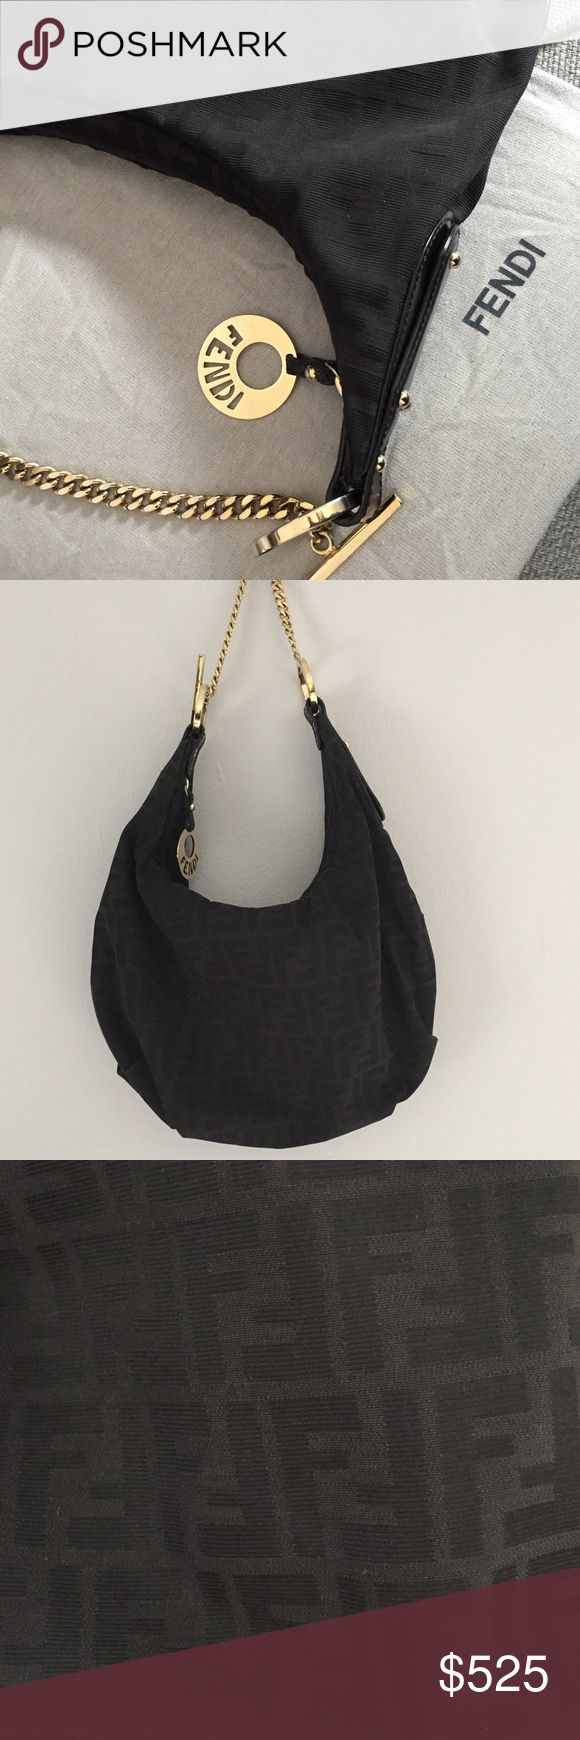 Authentic Fendi Small Chef Hobo Black Zucca Jacquard Fendi Hobo in impeccable used condition. Only sign of wear is slight tarnishing of gold toned hardware. Leather, jacquard, interior all clean and perfect. Priced to sell. Fendi Bags Shoulder Bags